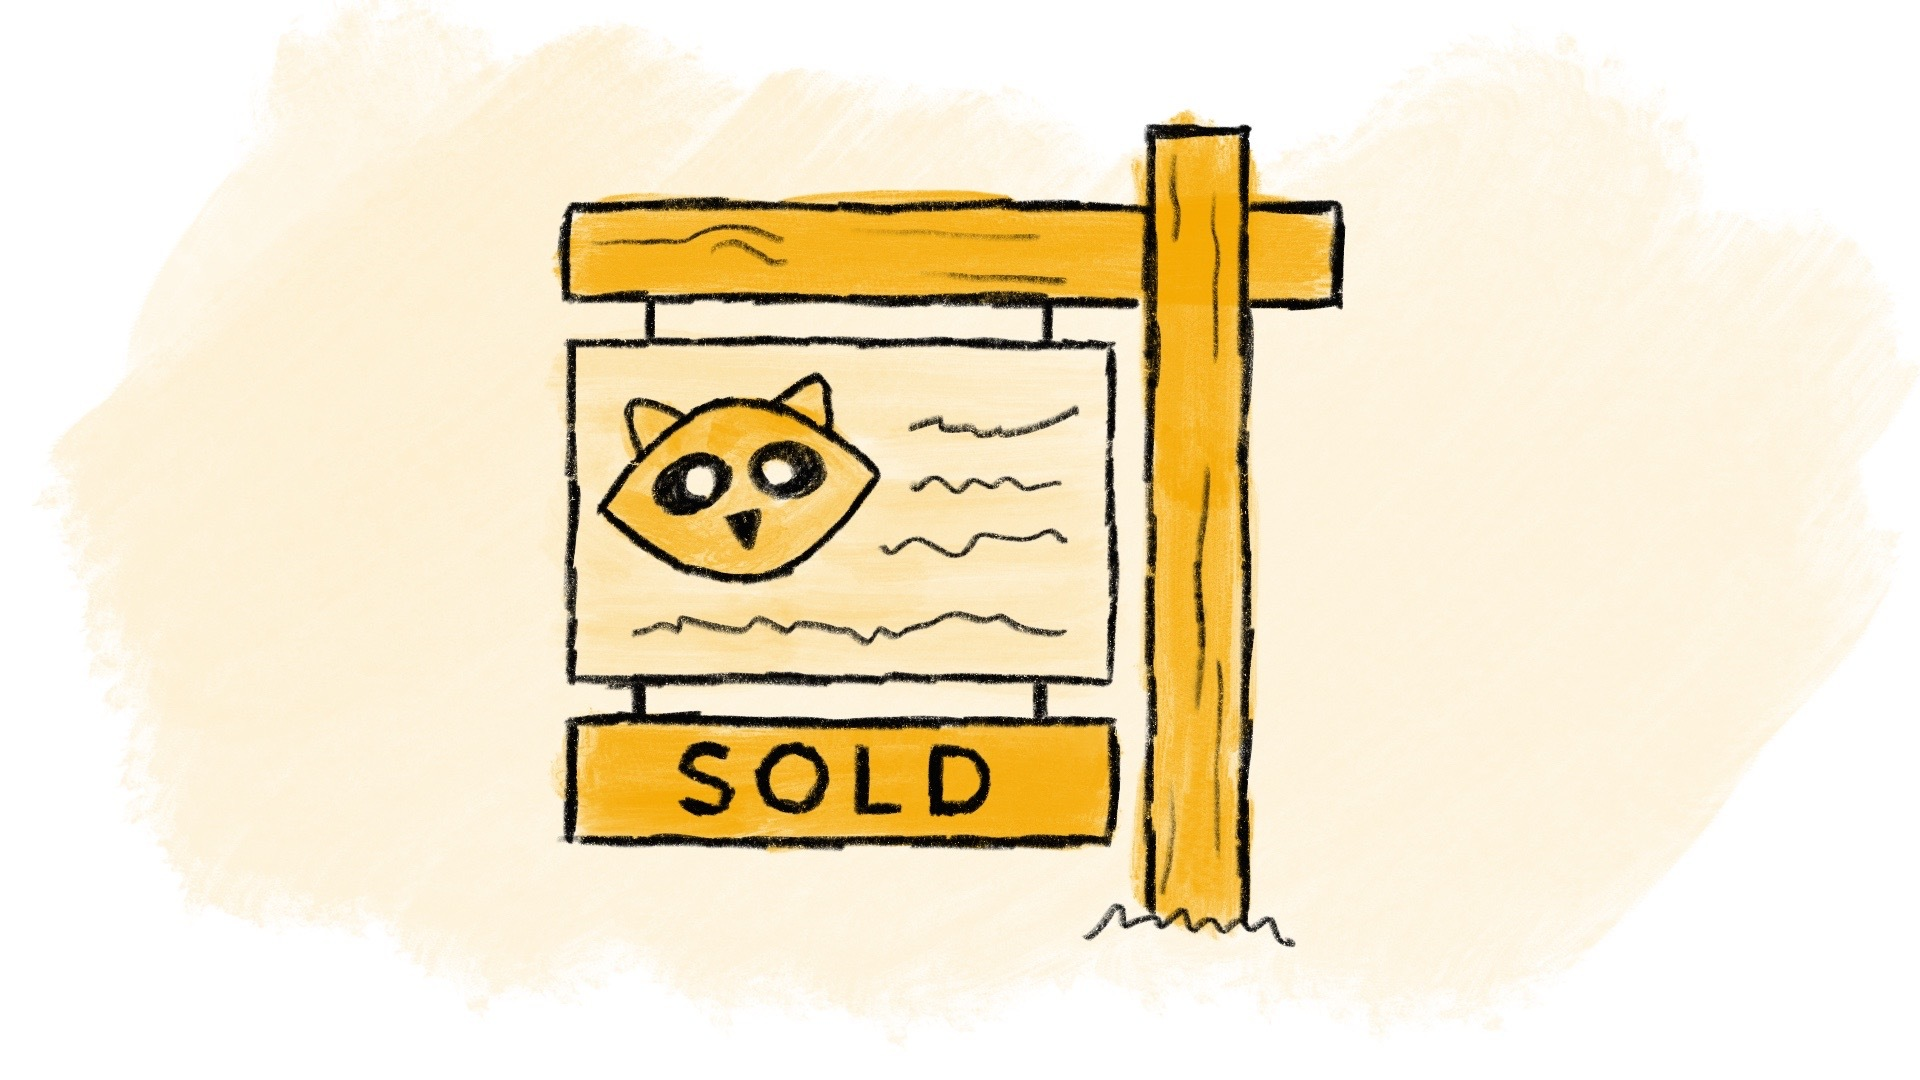 Illustrated house for sale sign